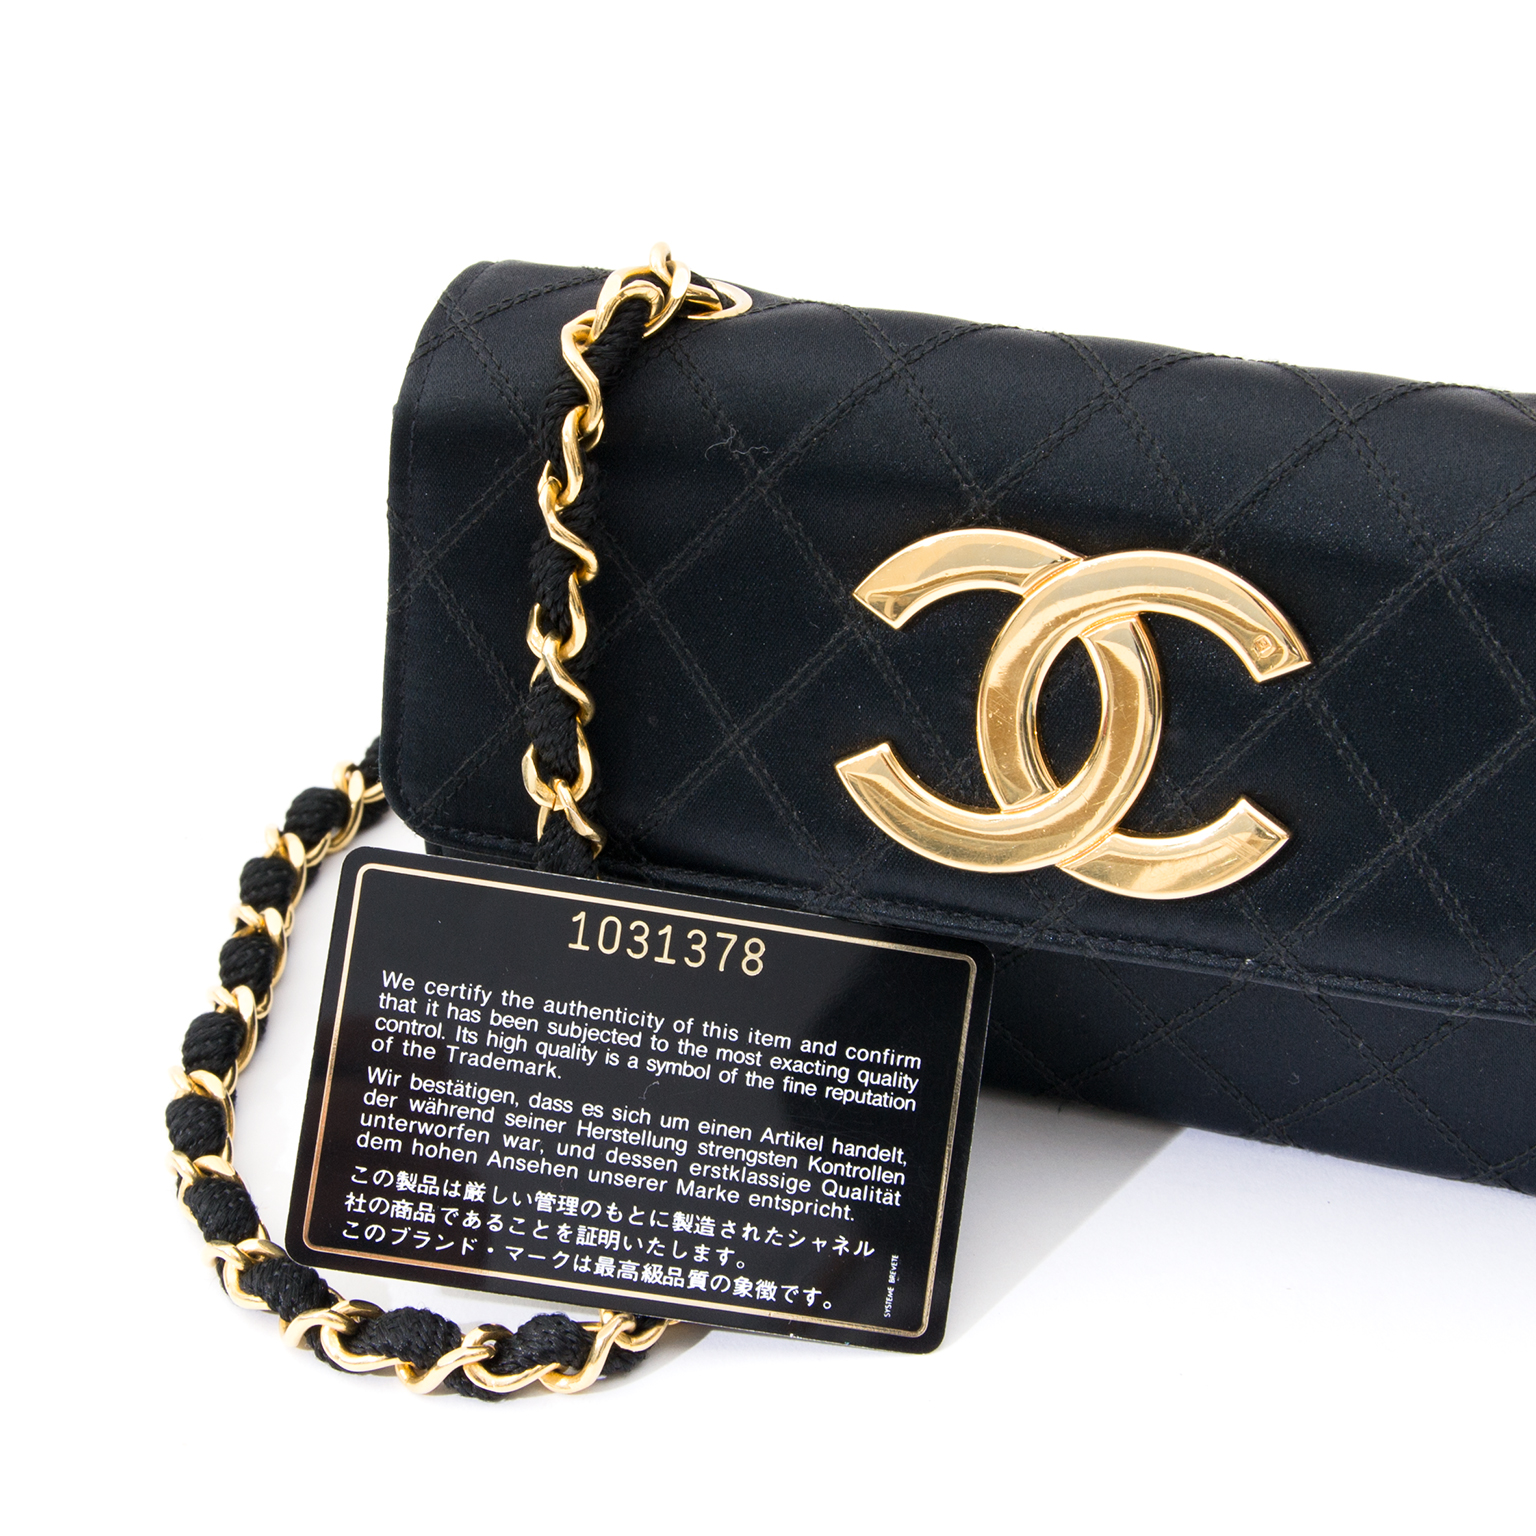 Chanel Black Silk Evening Bag GHW Chanel Black Silk Evening Bag GHW Chanel  flap bag made from quilted silk with long gold 272eae5bbba7a